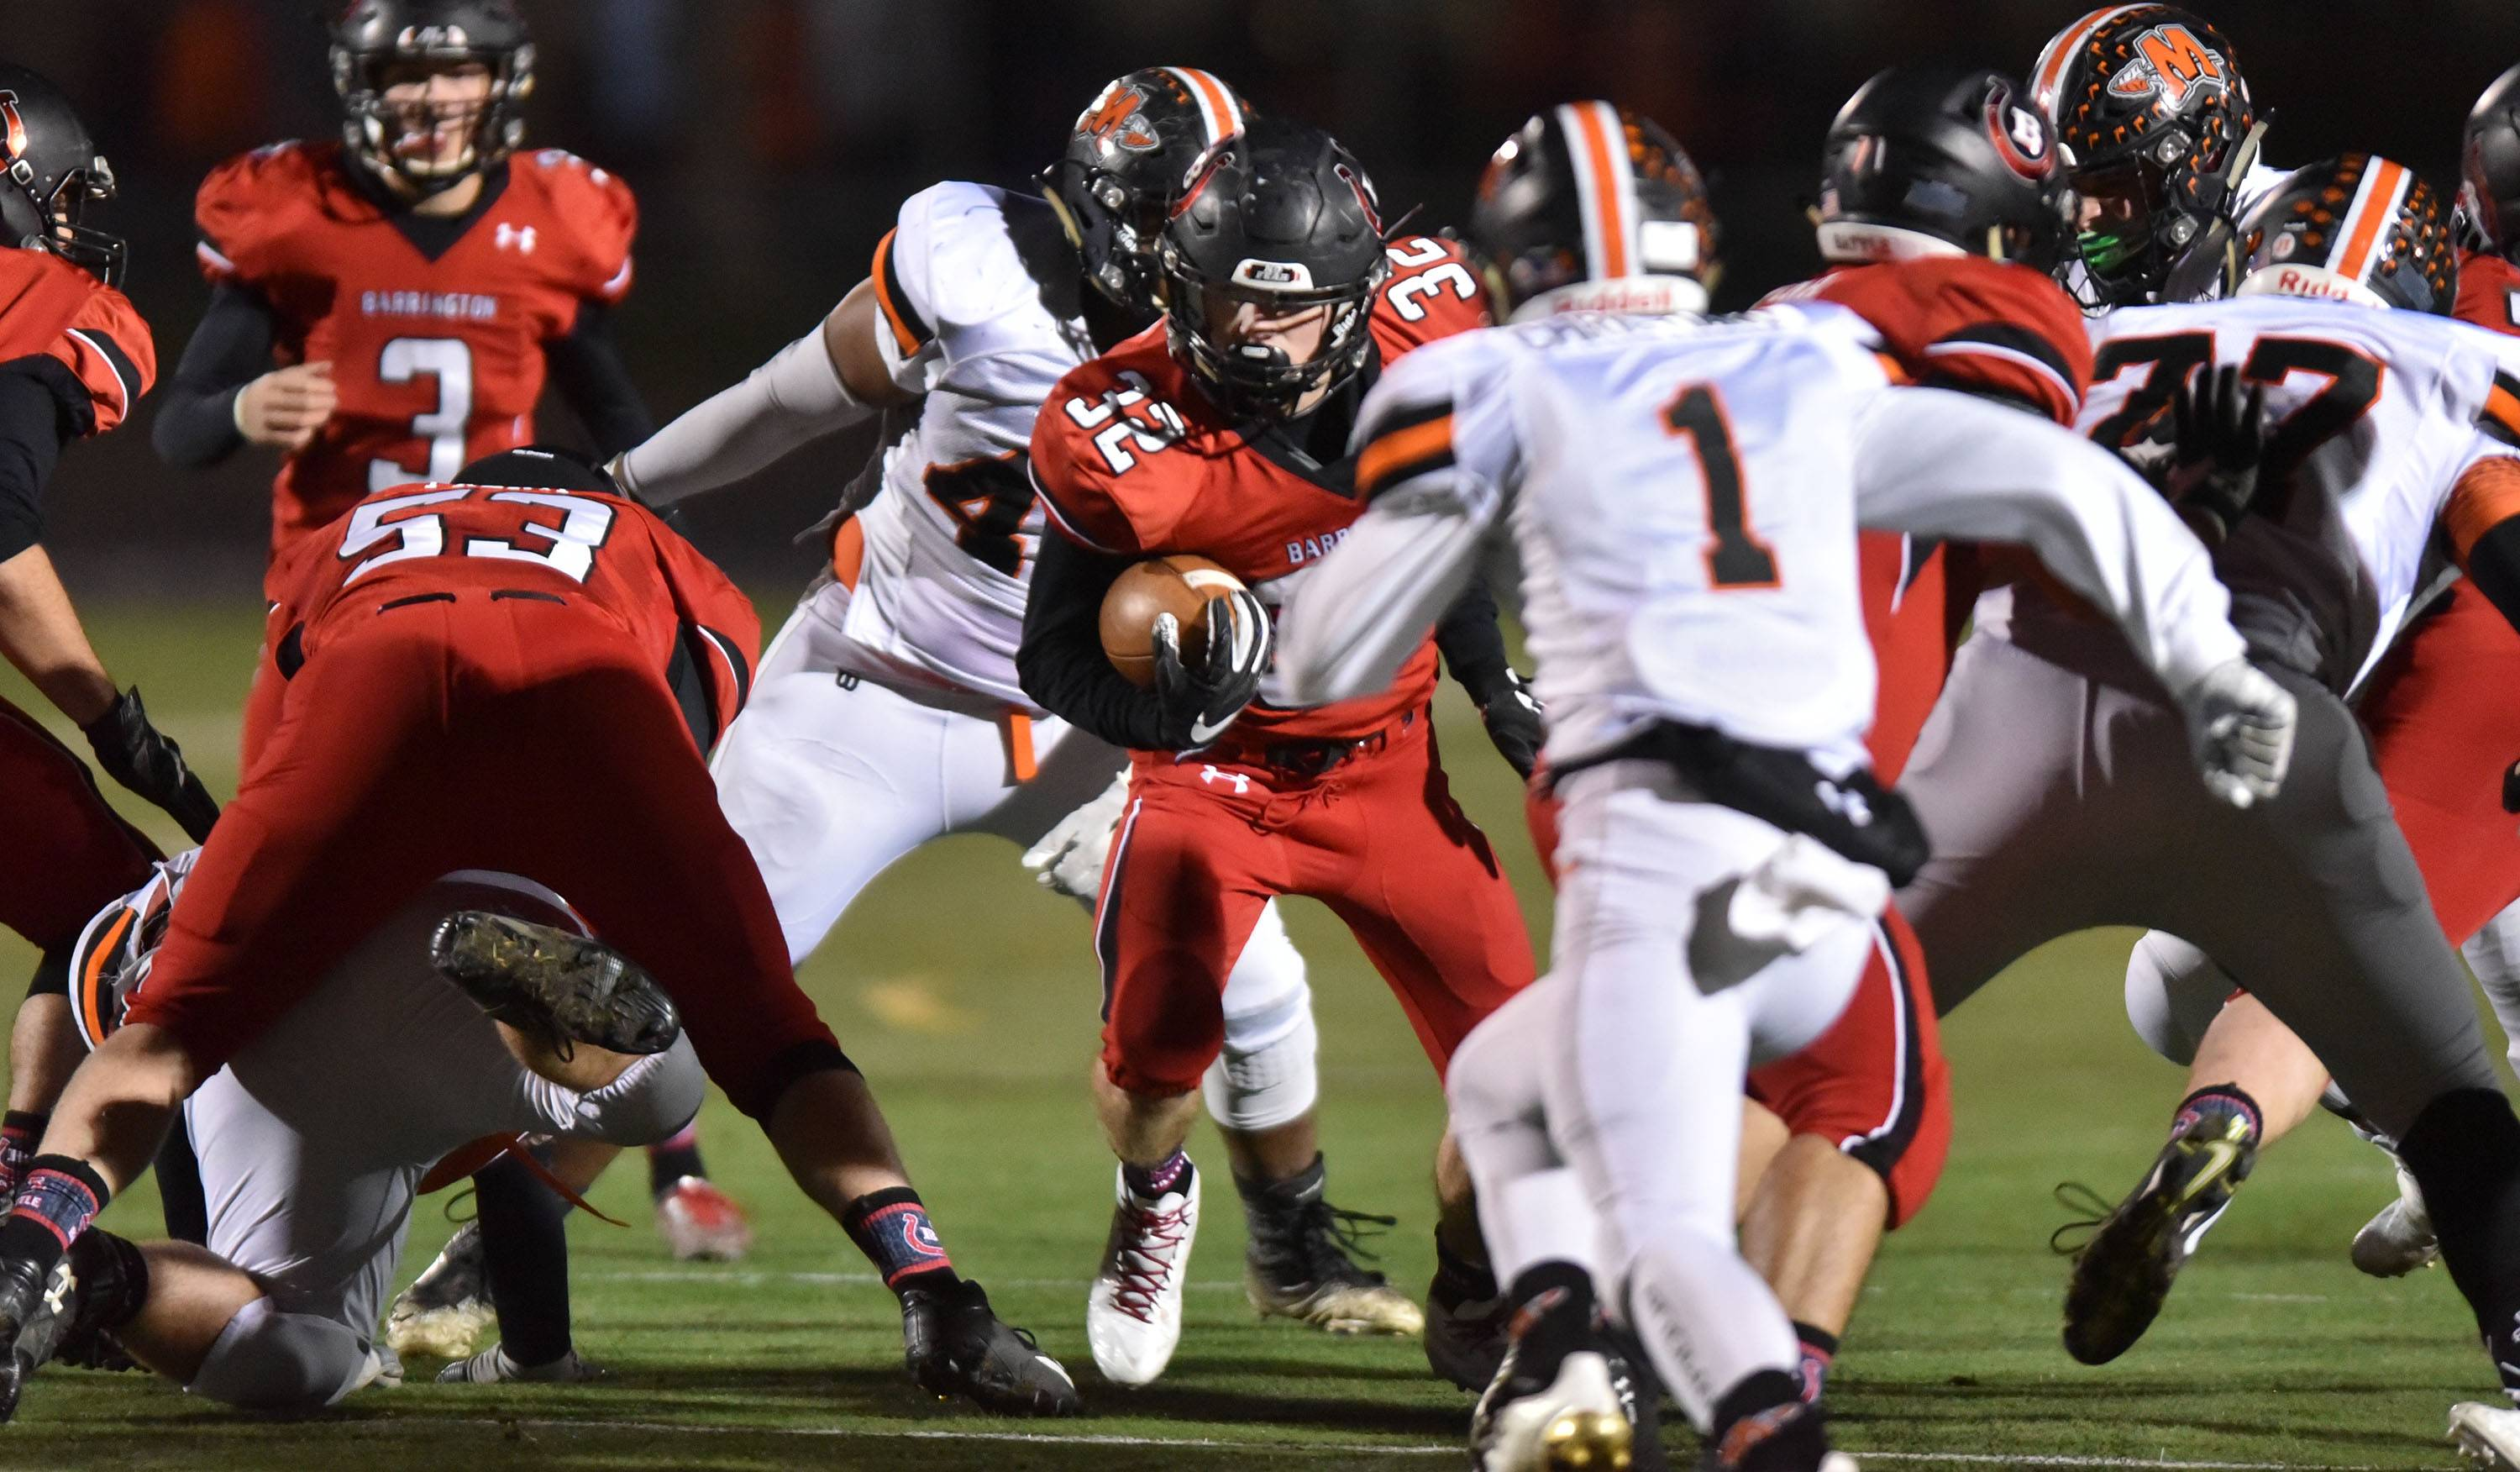 Barrington's Michael Curran carries for first-half yardage against visiting Minooka in the Class 8A playoffs Friday.